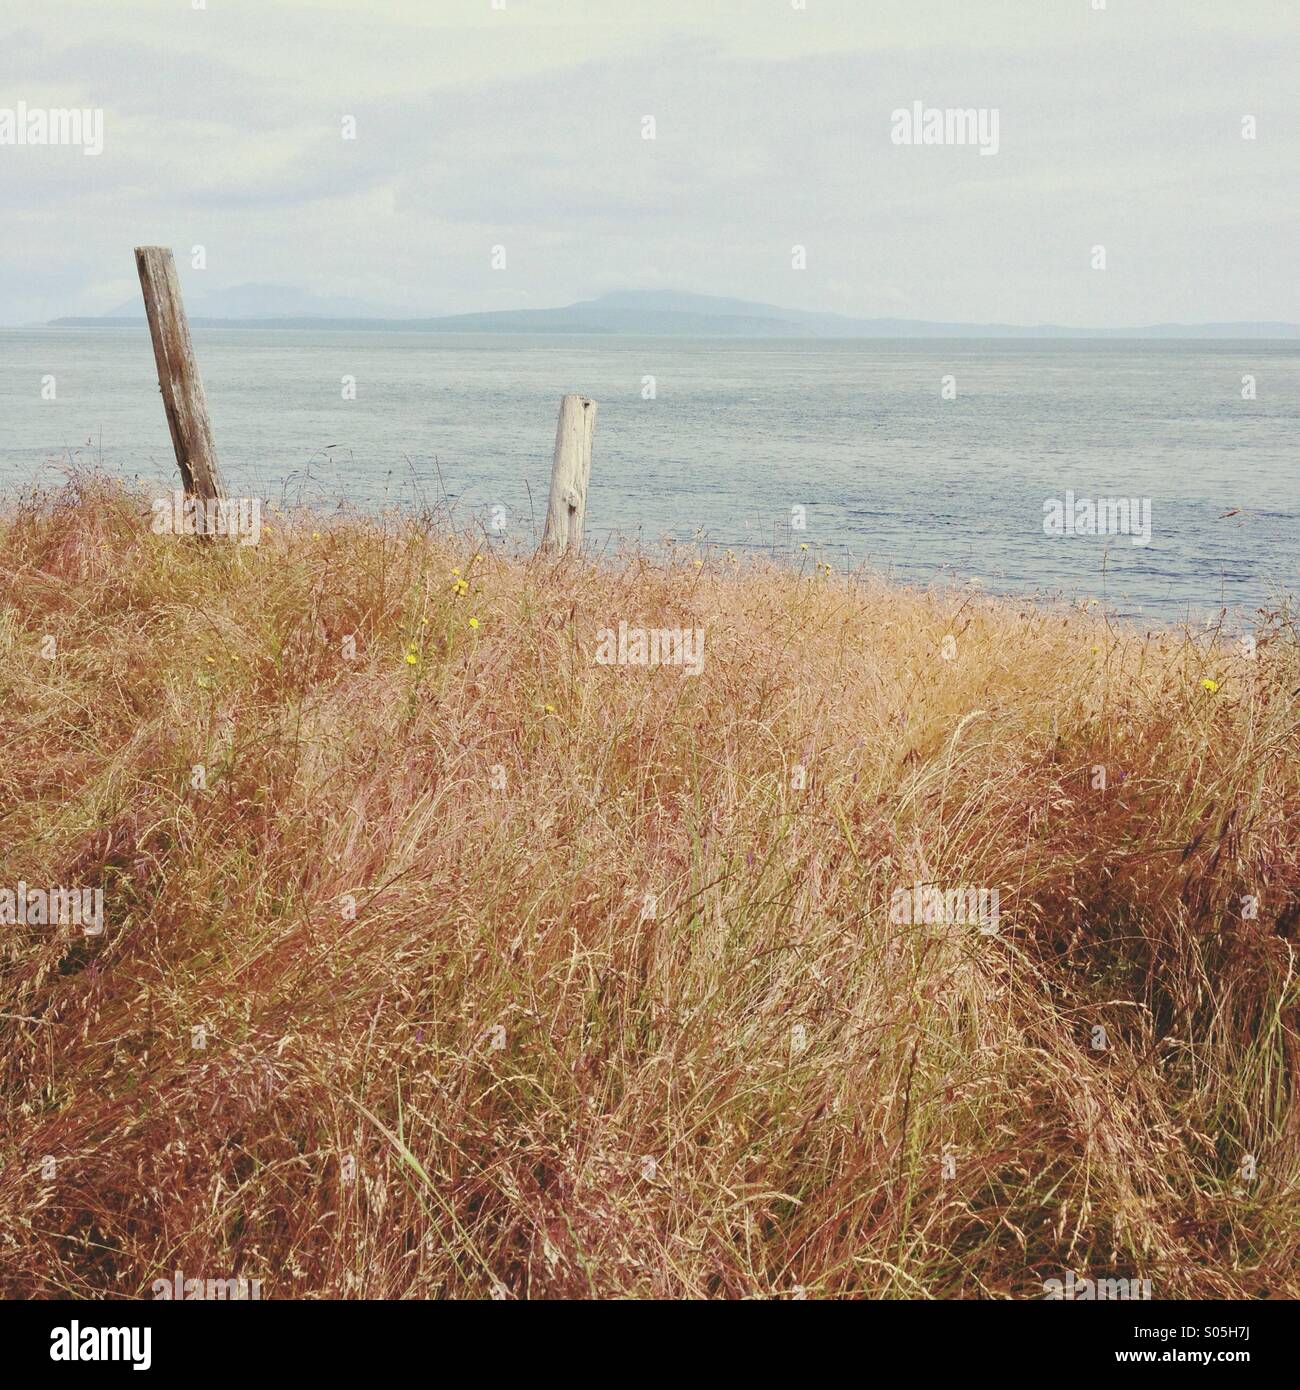 Minimalist landscape with grasses and posts overlooking ocean and islands. Stock Photo